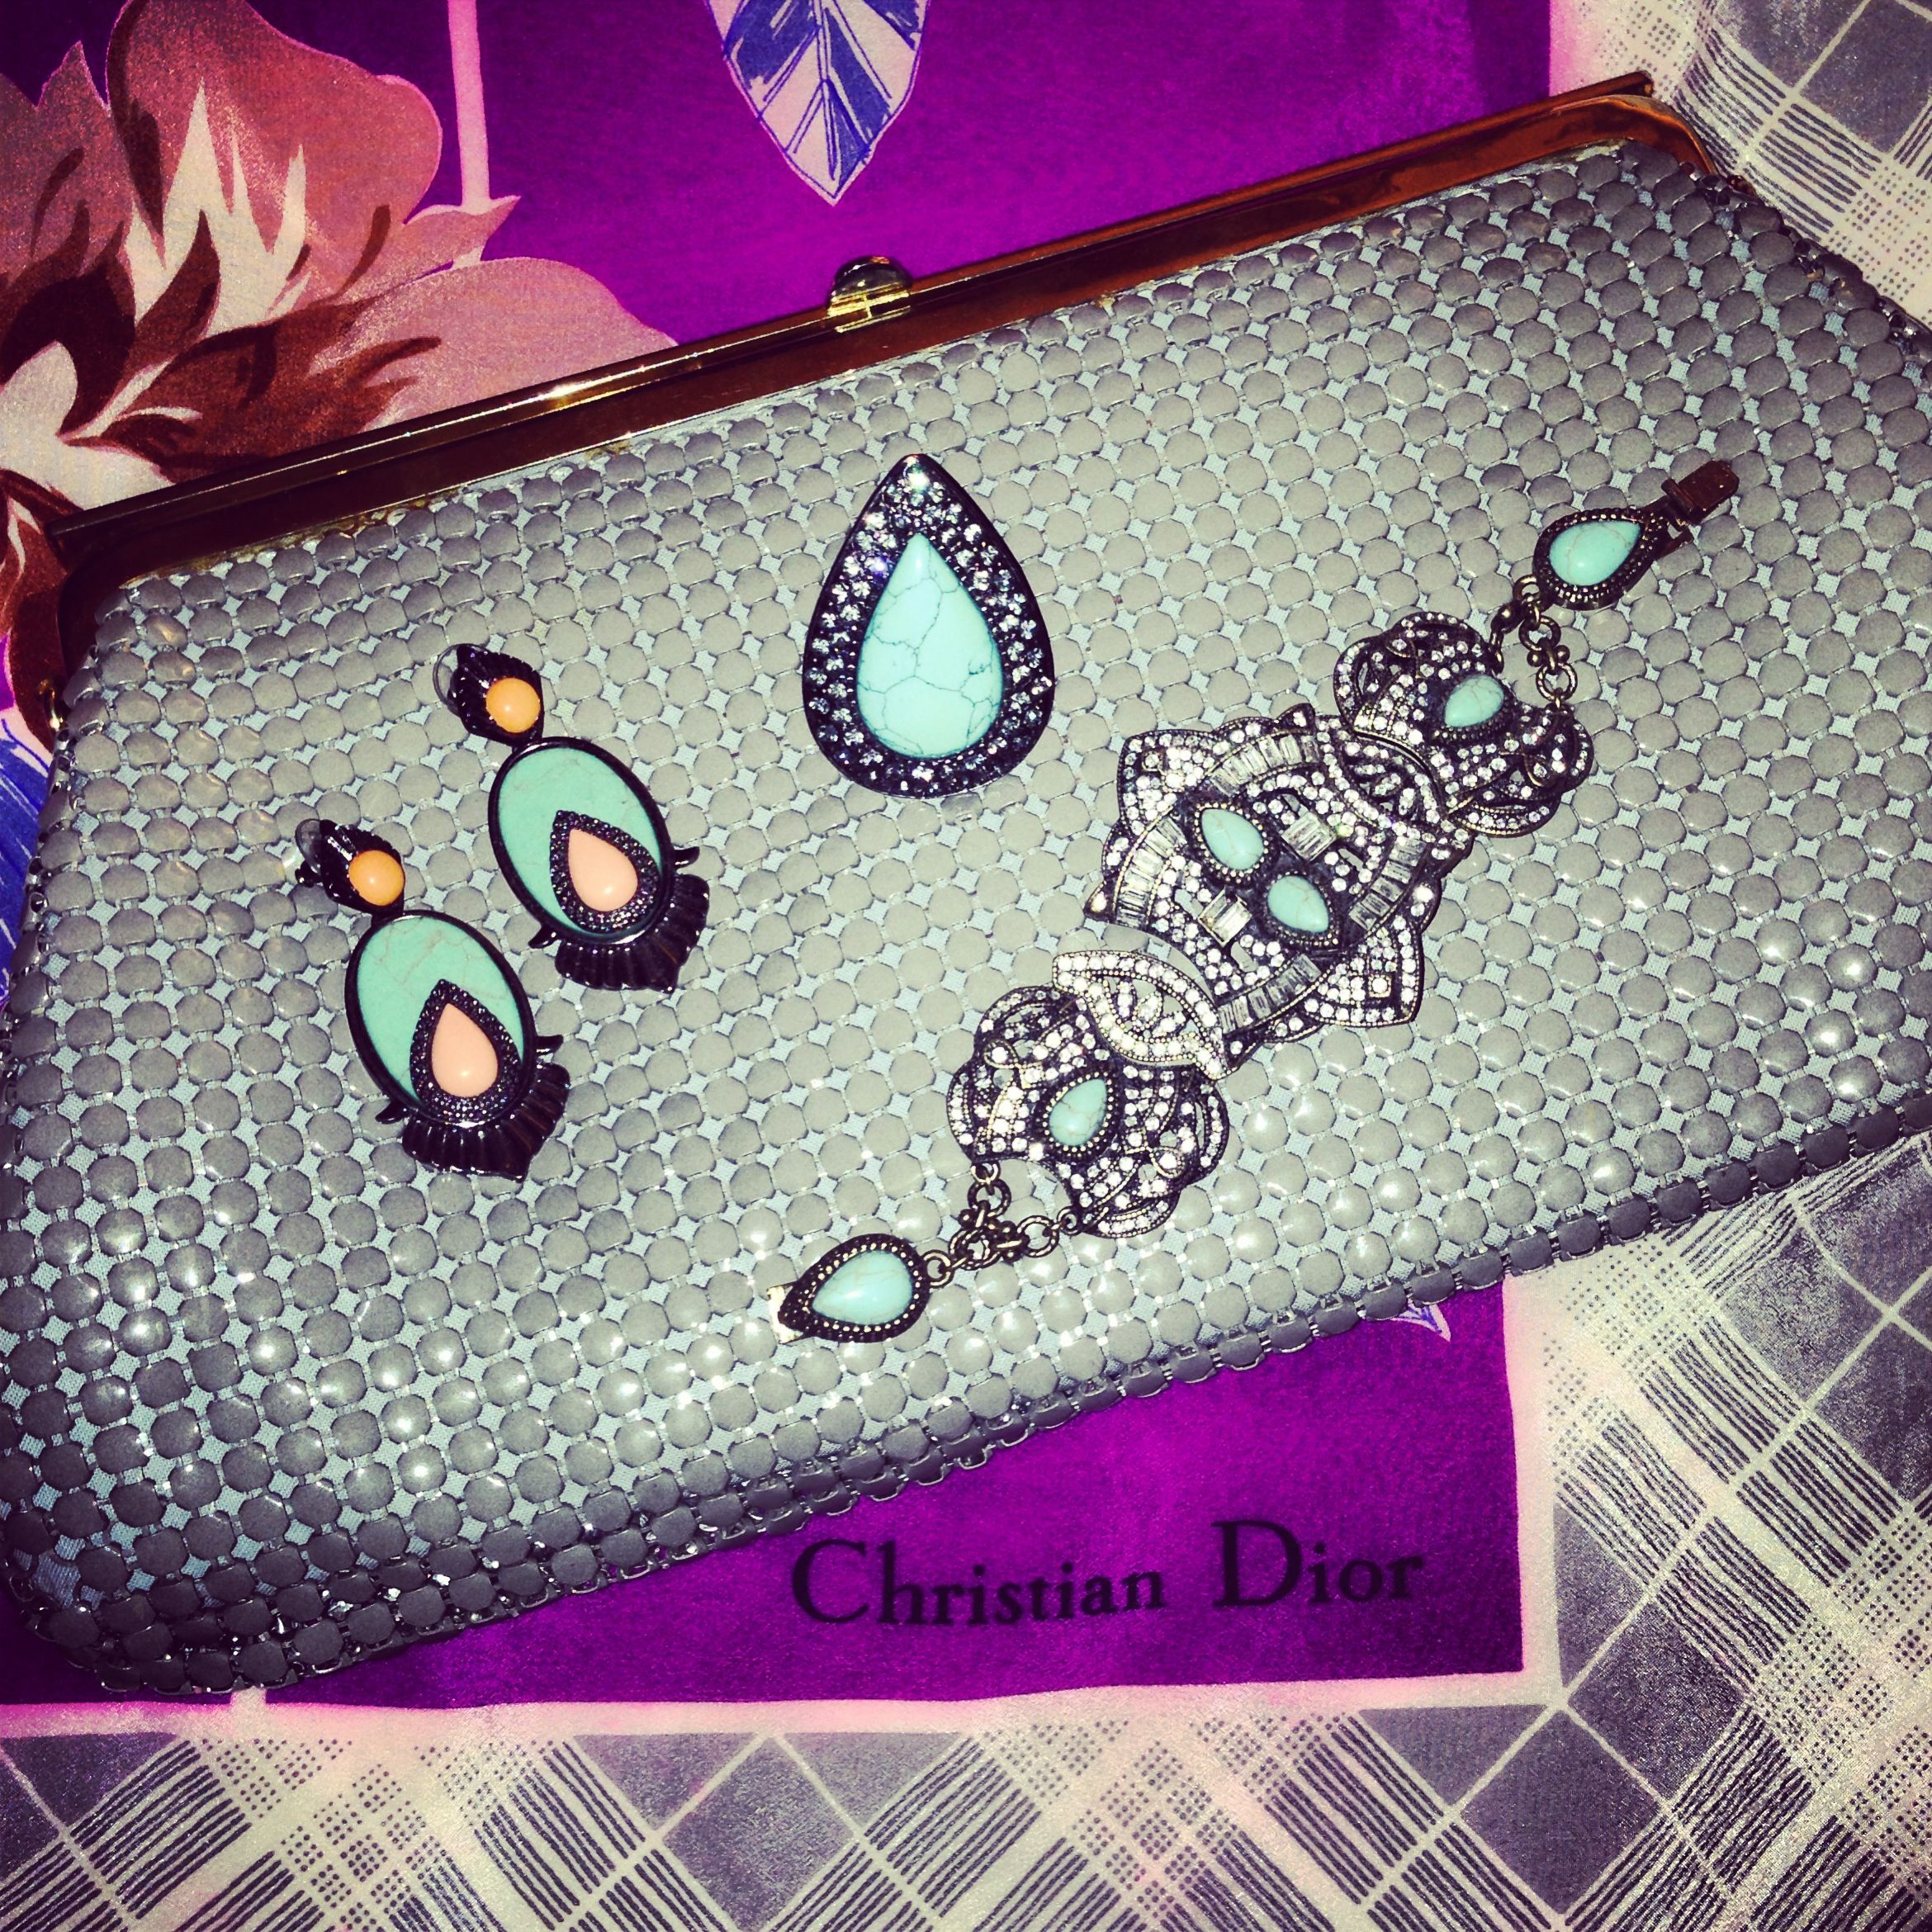 Some of my Favourite things! Vintage Dior Scarf, vintage glomesh and my stunning SW jewels xo